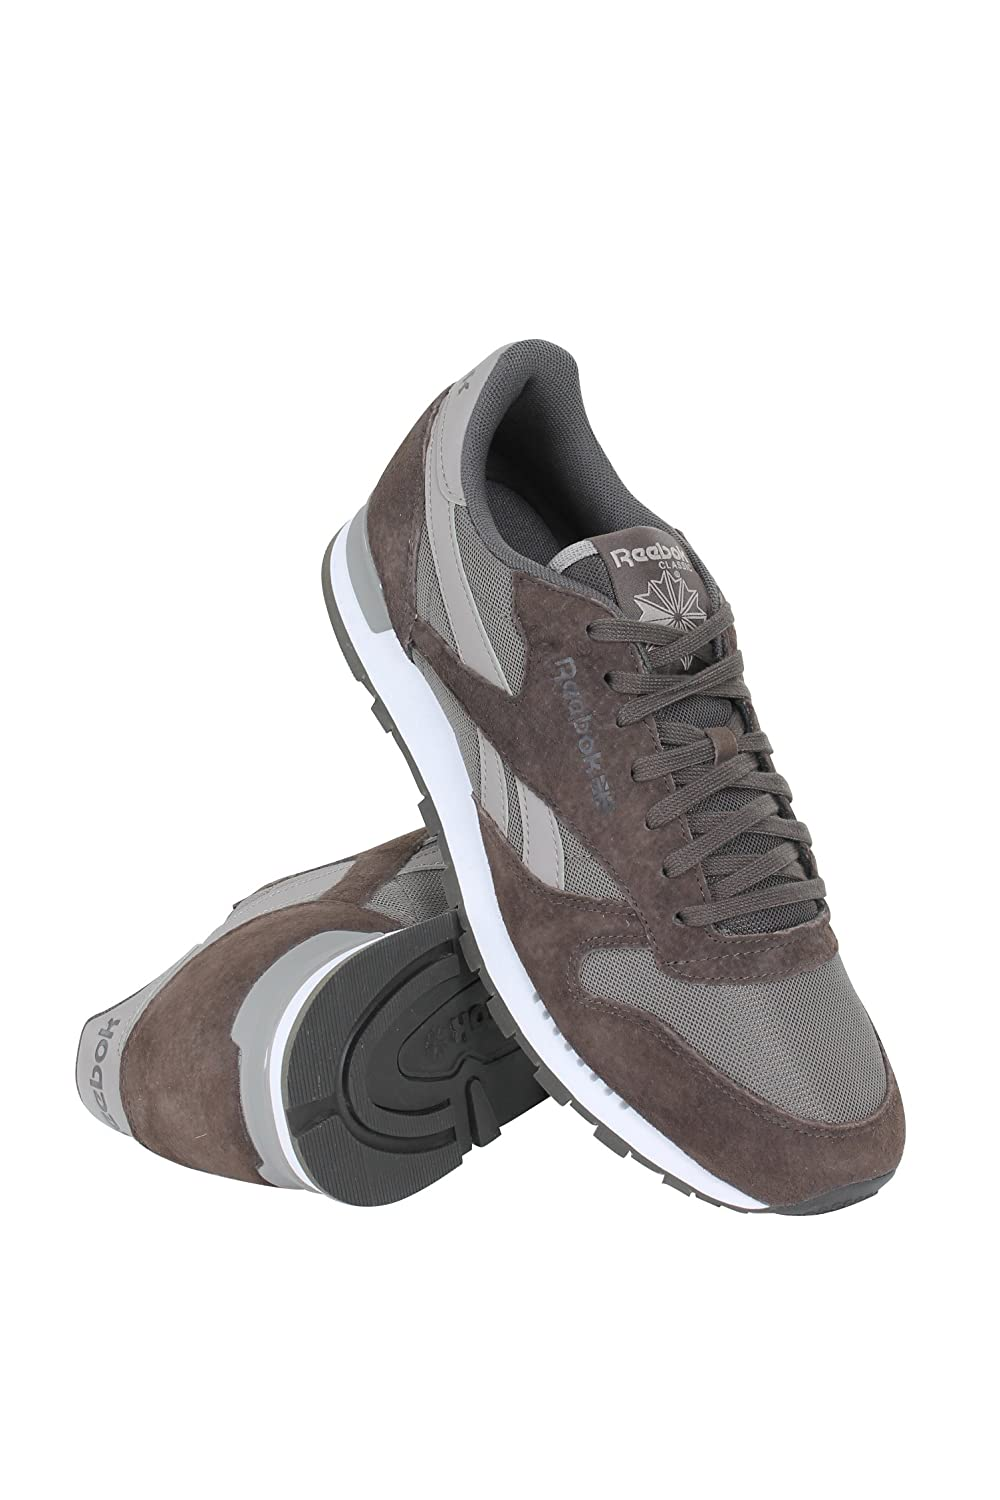 30ca115f7c714 Reebok Lifestyle Men s Classic Leather Clip ELE Cliff Stone Stone Beach  Stone Athletic Shoe  Buy Online at Low Prices in India - Amazon.in